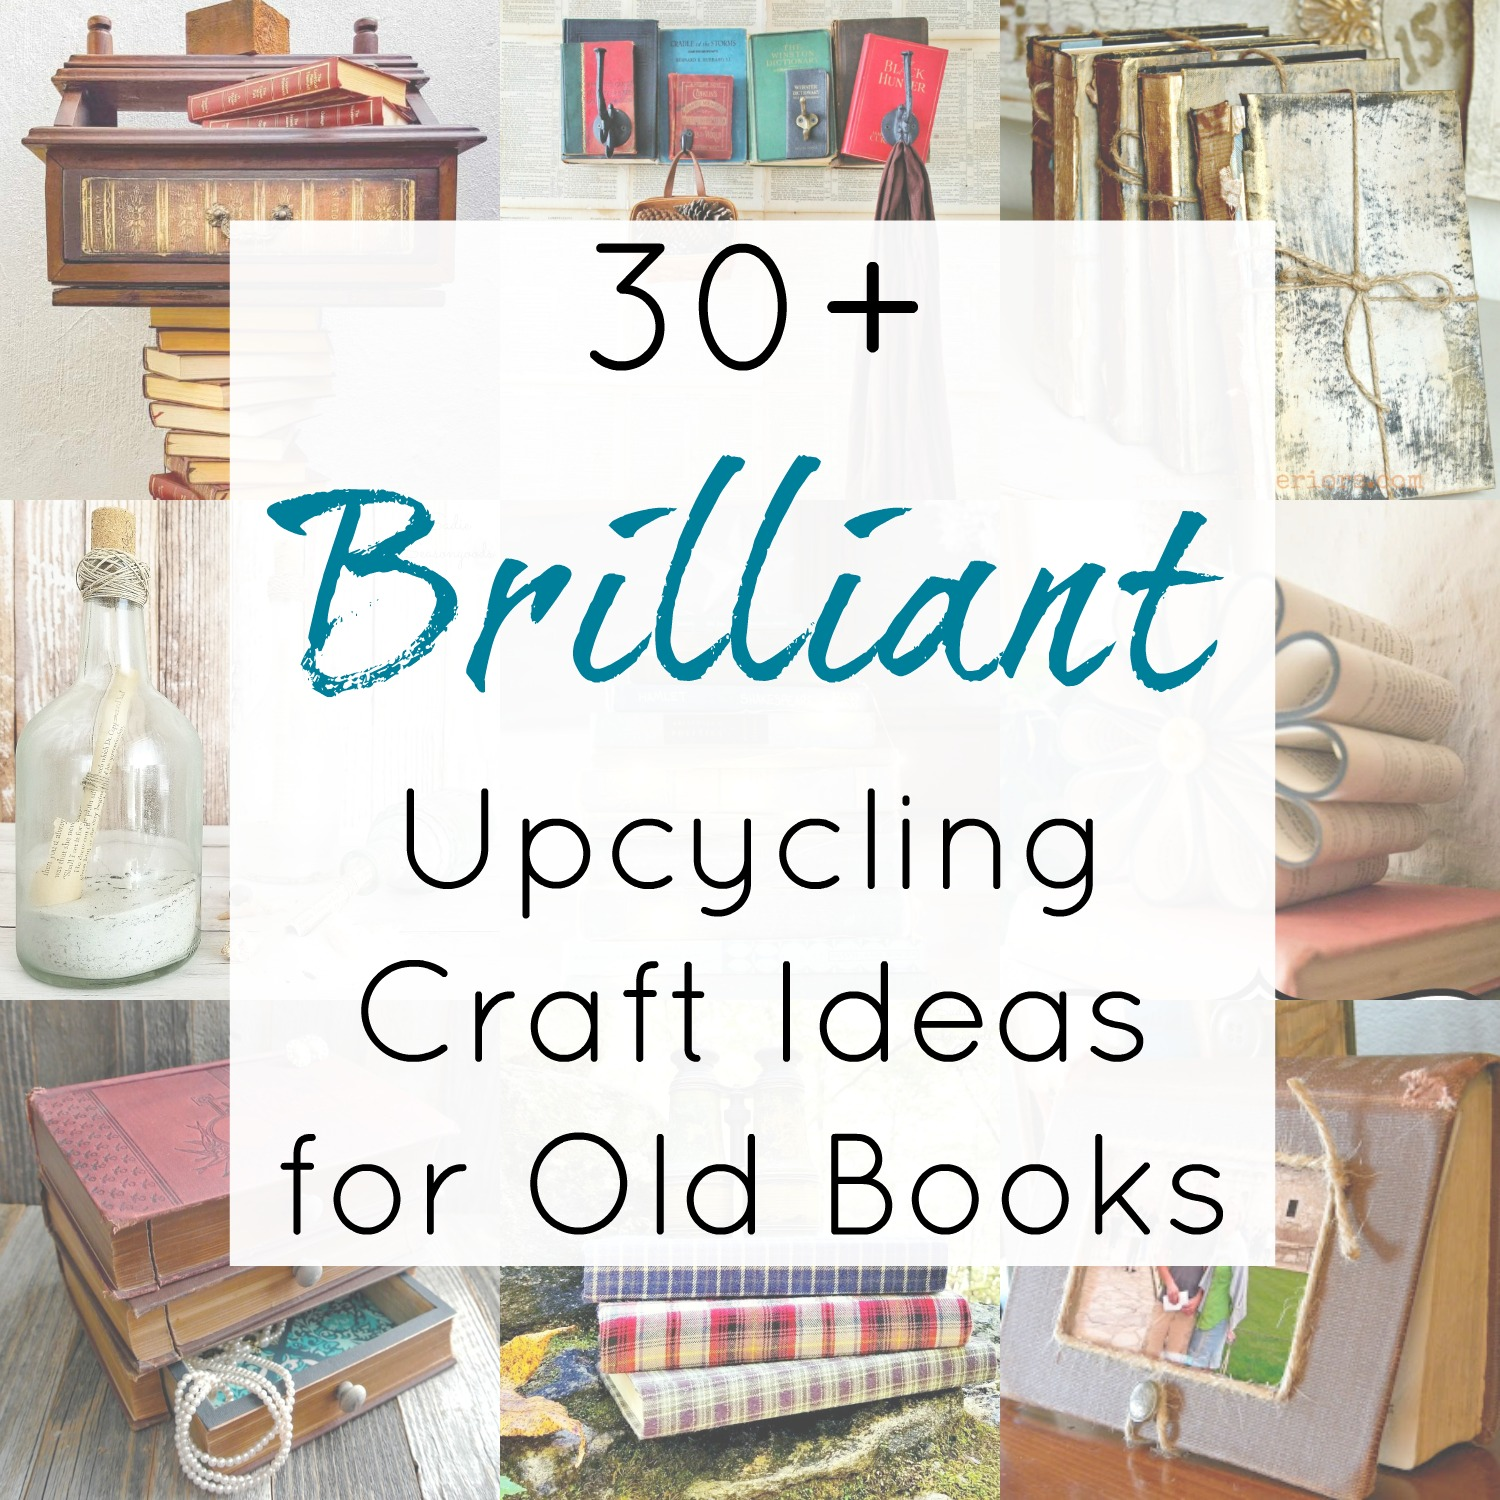 Upcycling craft projects for old books, vintage books, and outdated encyclopedias compiled by Sadie Seasongoods / www.sadieseasongoods.com